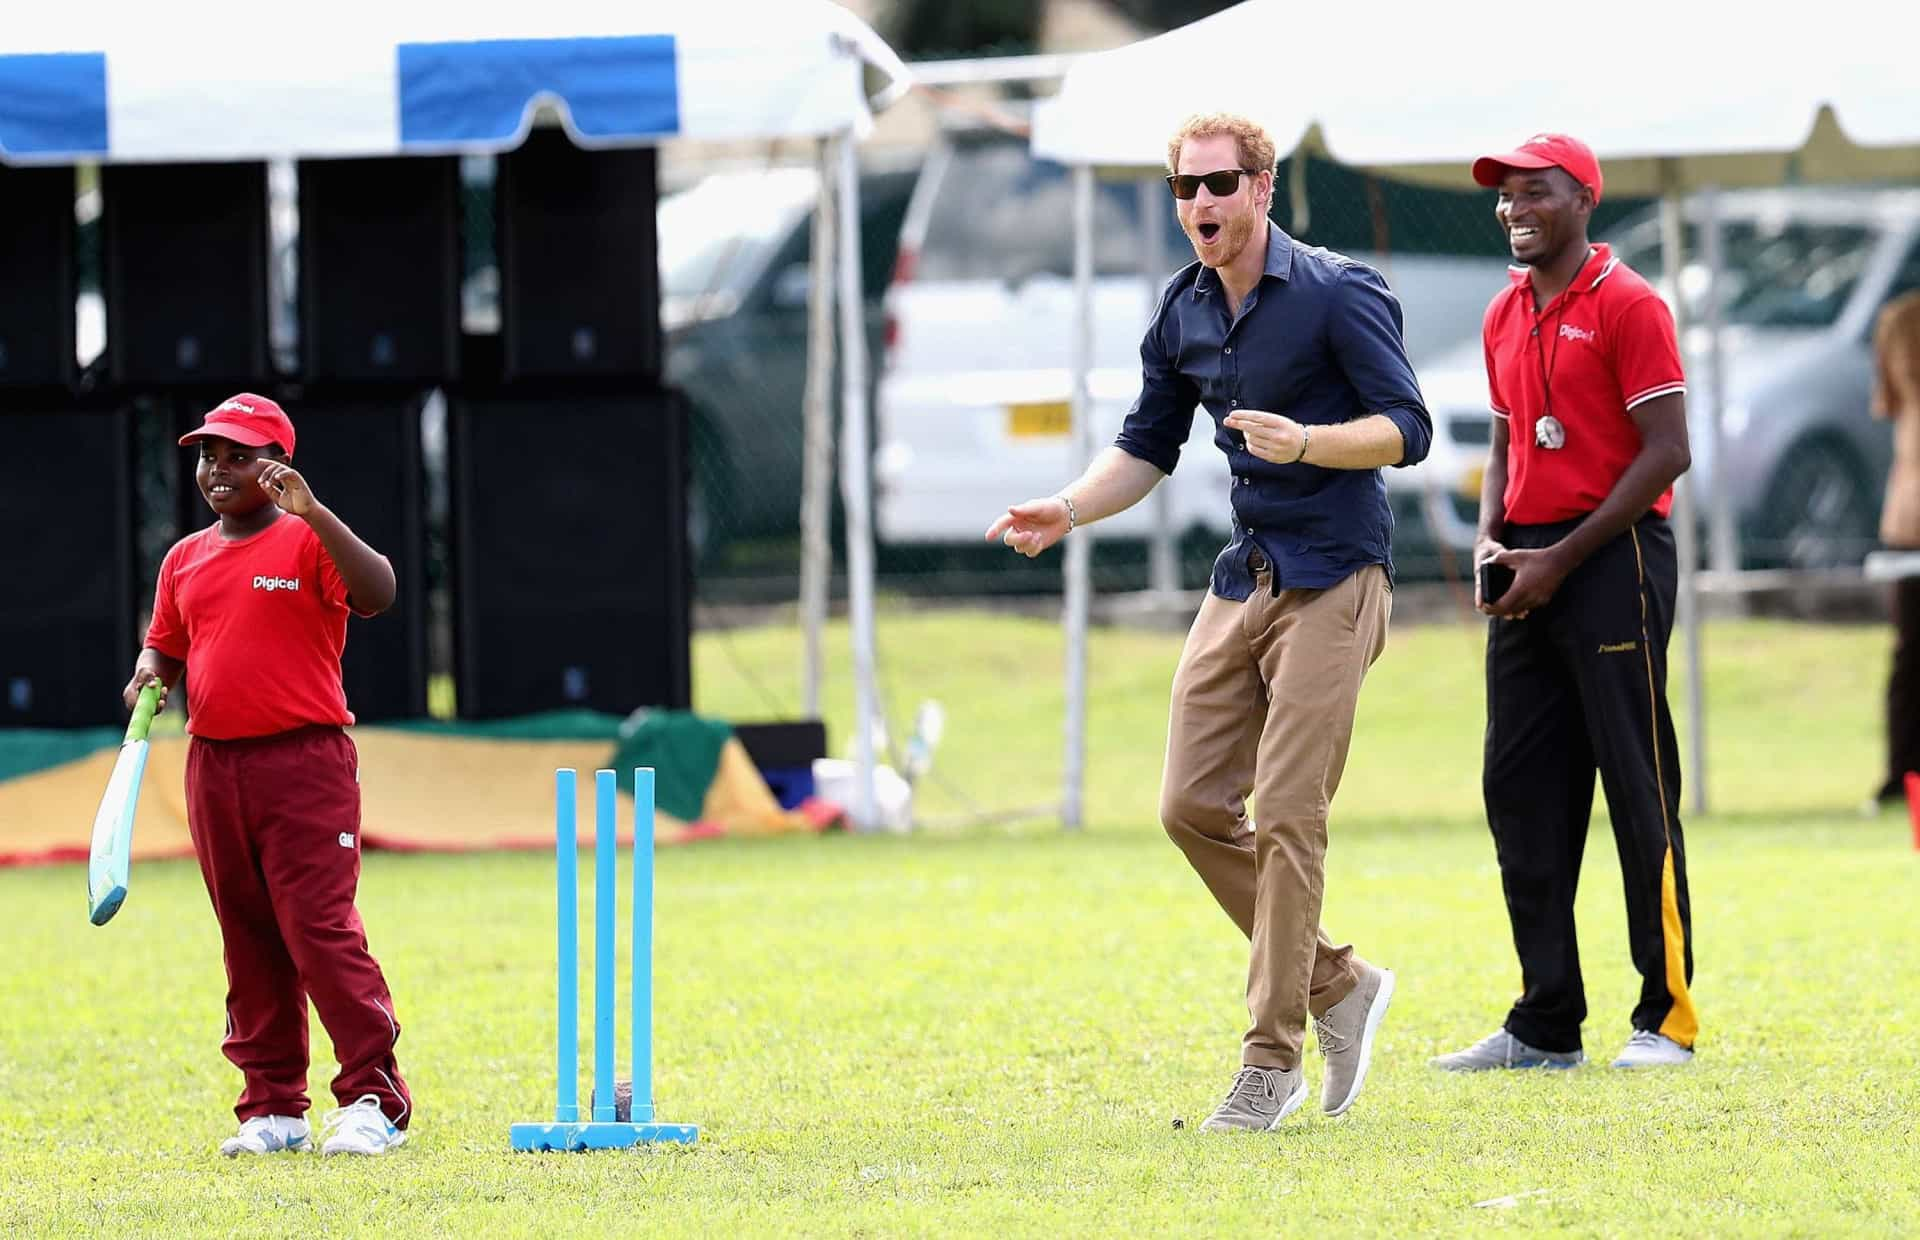 Príncipe Harry joga cricket nas Caraíbas